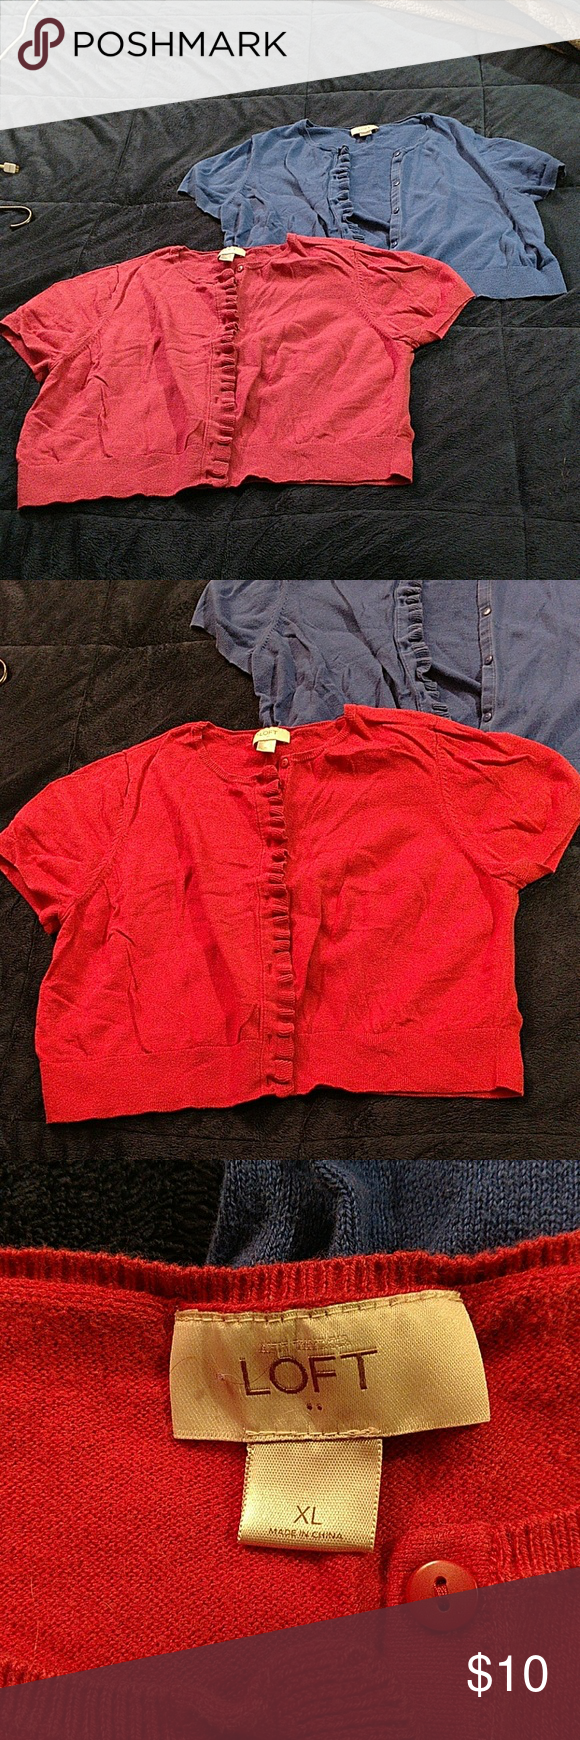 2 XL Ann Taylor Loft cropped shortsleeve cardigans Cropped short sleeve button up cardigans. One blue and one red (it is a soft red, not a bright red. Idk why it is so hard to get the color right in the pictures!) They have a ruffle detail up the side with the button holes. LOFT Tops Button Down Shirts